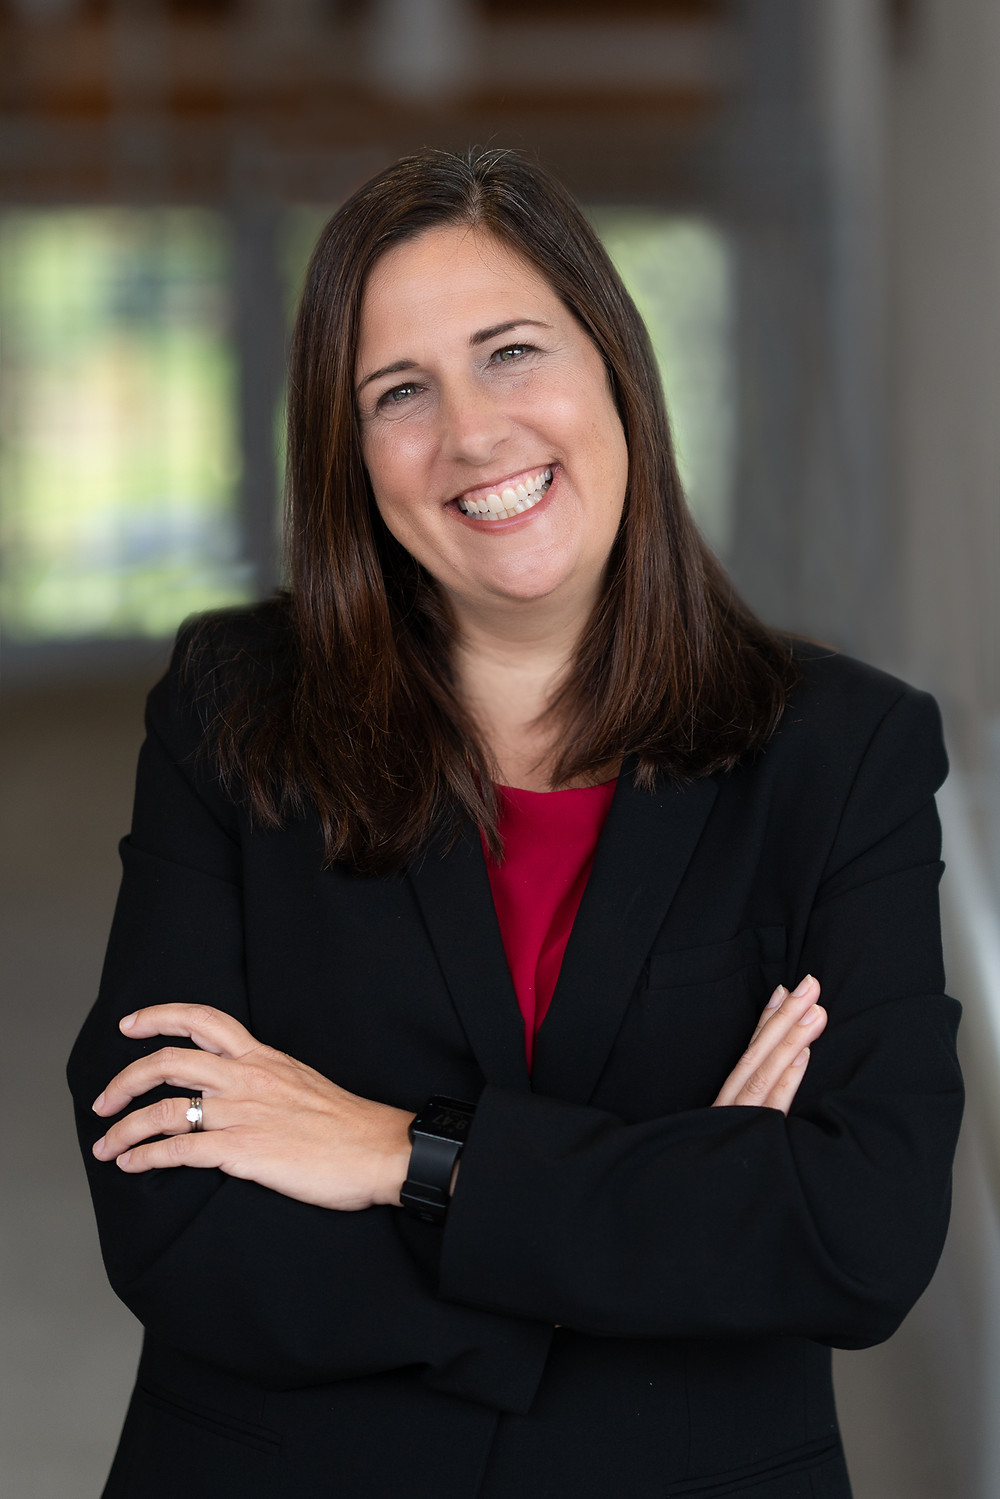 A middle aged woman wearing a suit smiles at camera for her commercial portrait